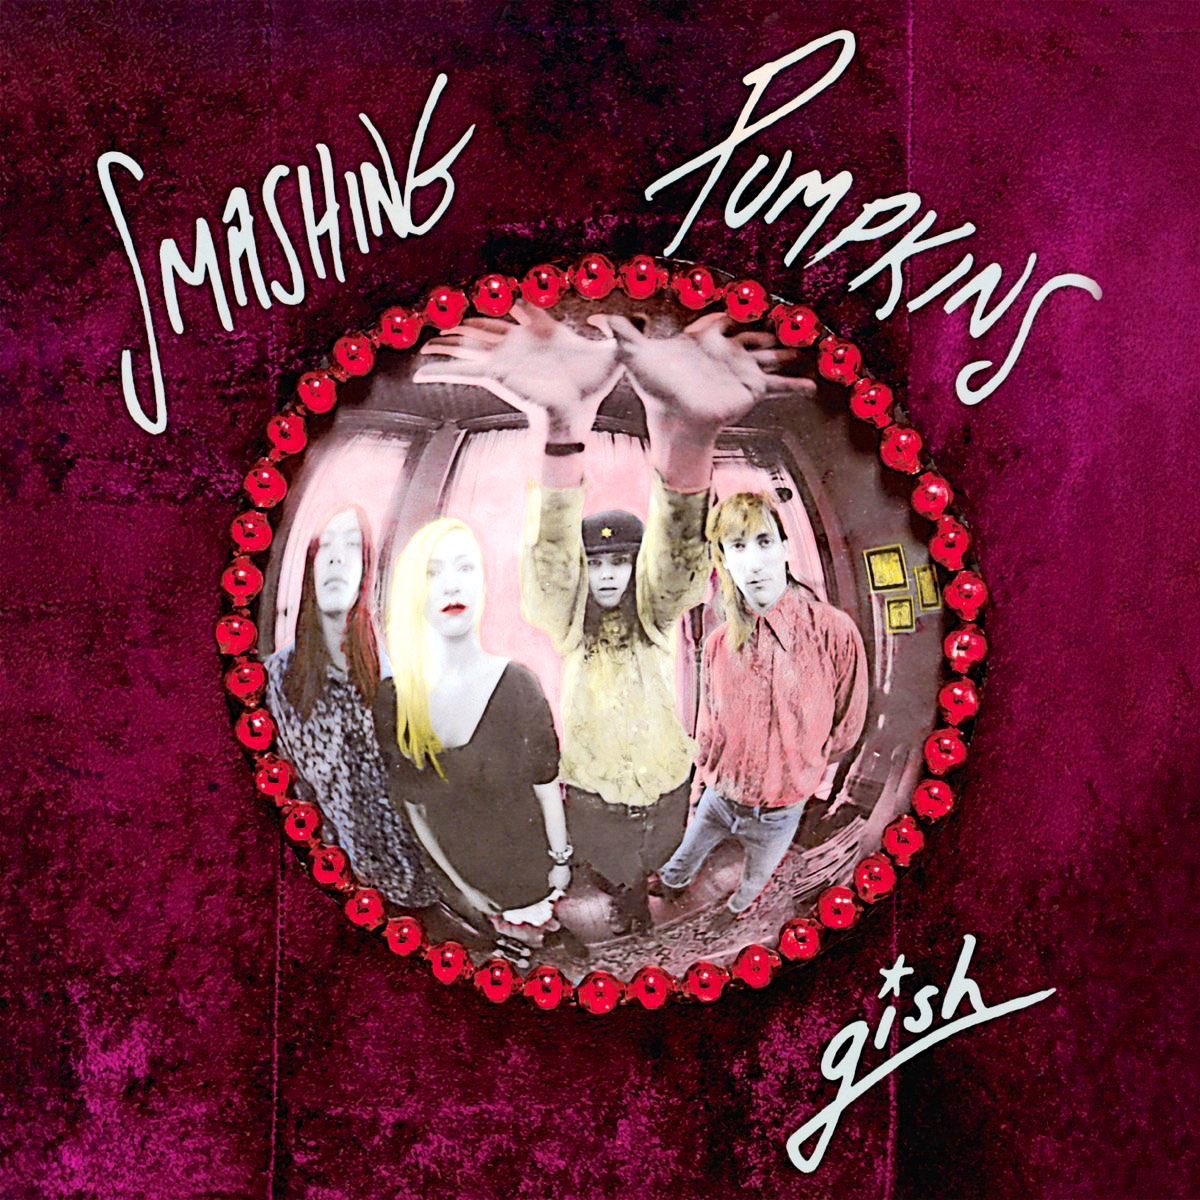 """On this day: May 28th, 1991, The Smashing Pumpkins released their debut album """"Gish"""". • • • • #frecuenciarock #music #didyouknow #efemerides #undiacomohoy #musichistory #90s #29yearsago #onthisday #bands #artist #musica #album #rock #fan #gish #smashingpumpkins #billycorganpic.twitter.com/Vd9cqellAh"""